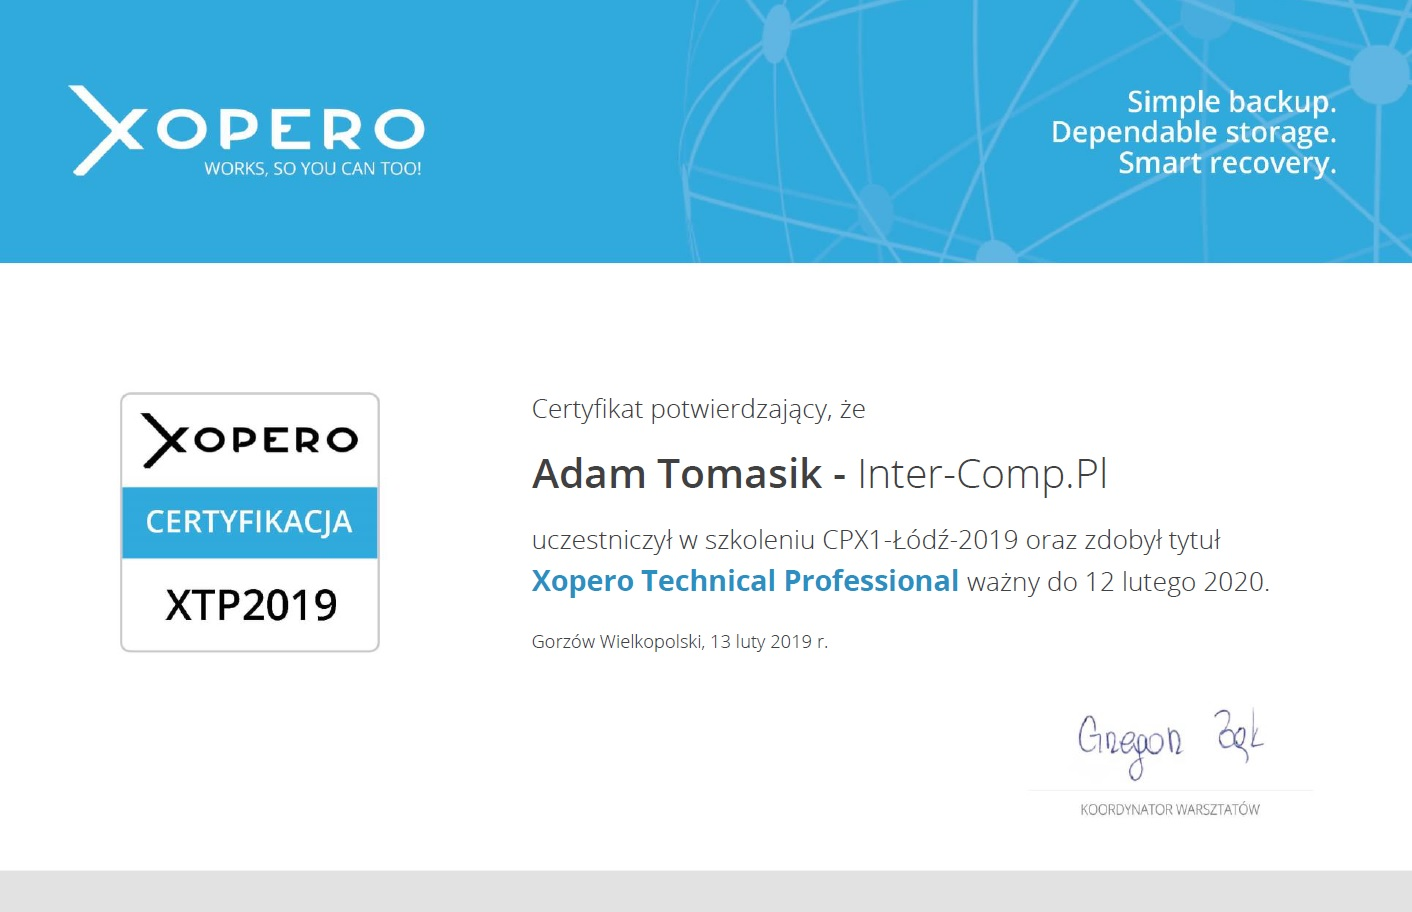 Xopero Technical Professional